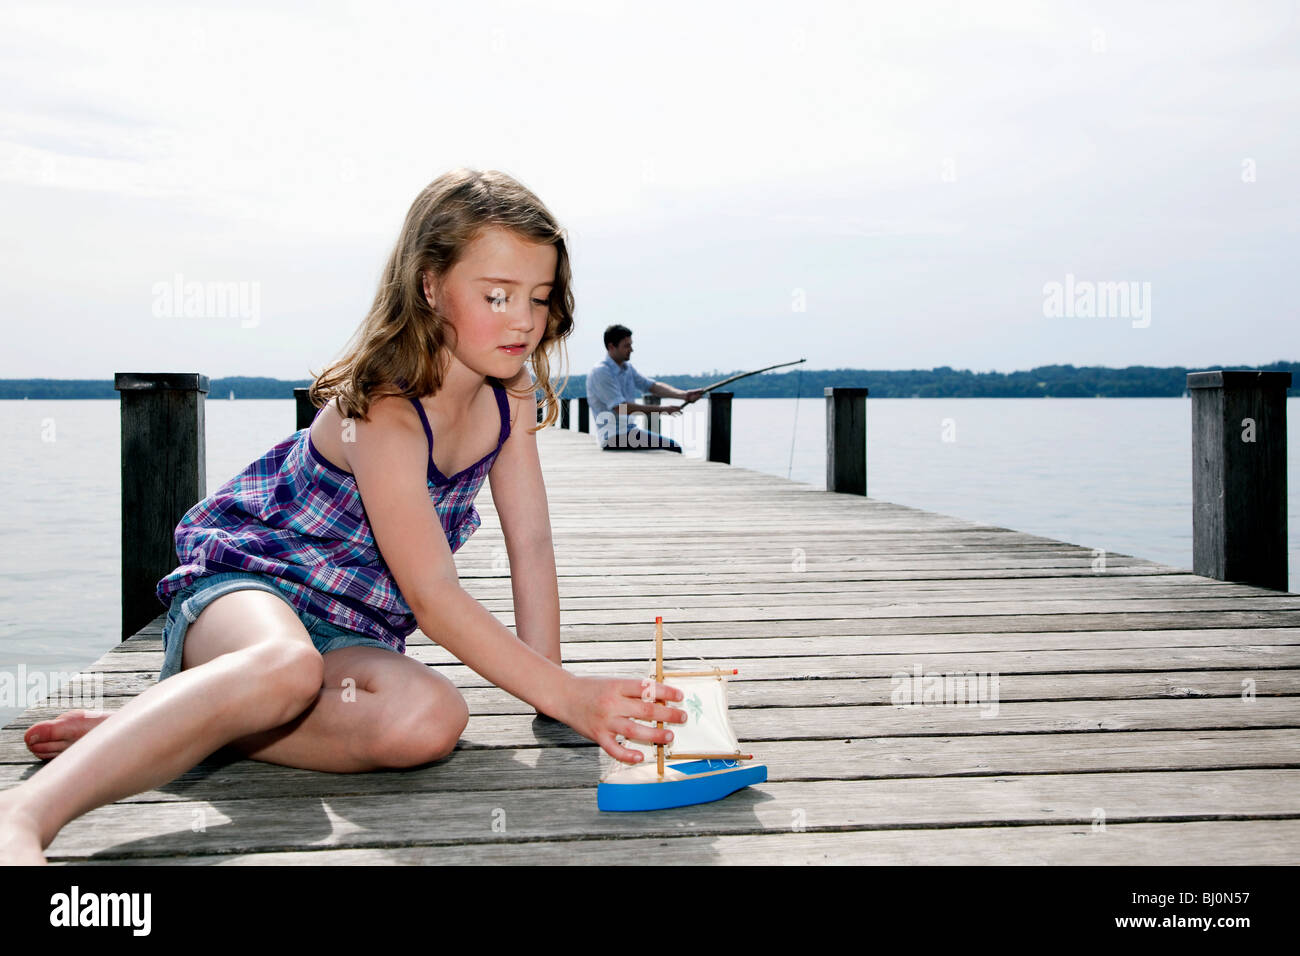 young girl playing with toy boat on pier while father is angling in background - Stock Image